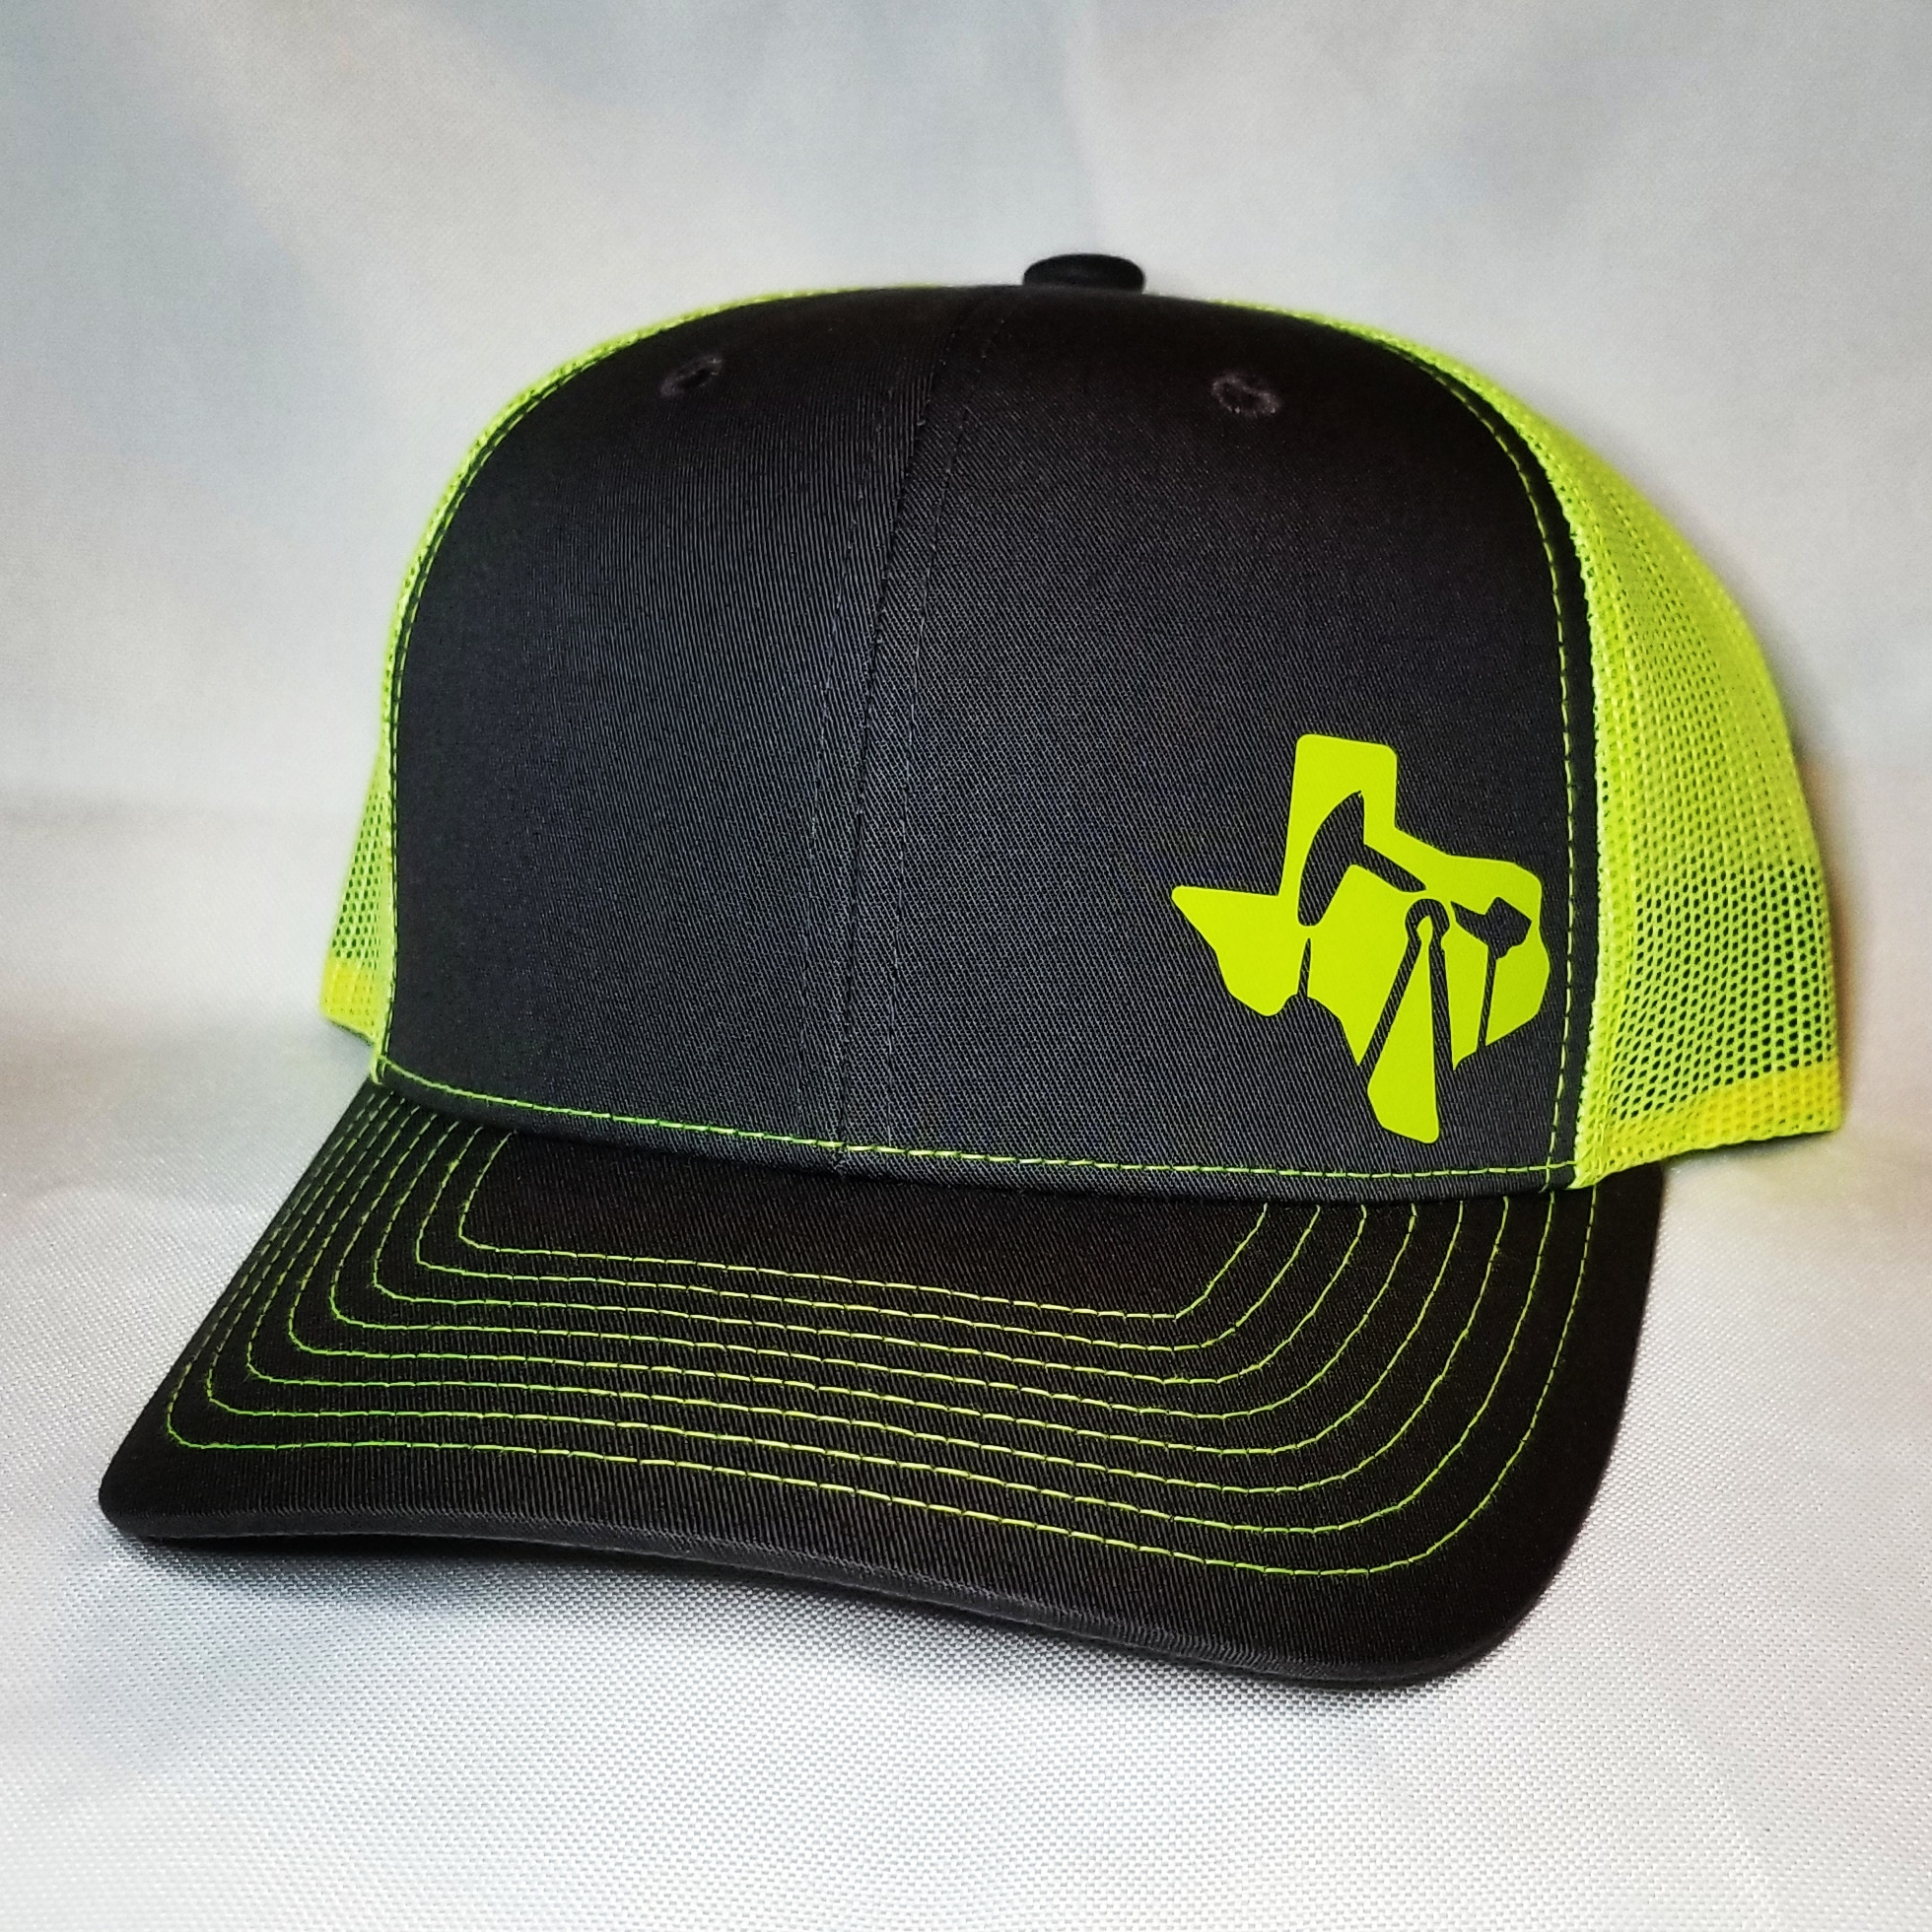 huge selection of b584b a6d22 ... where to buy texas oilfield caps are now available at texas peeps hat  co. 513de